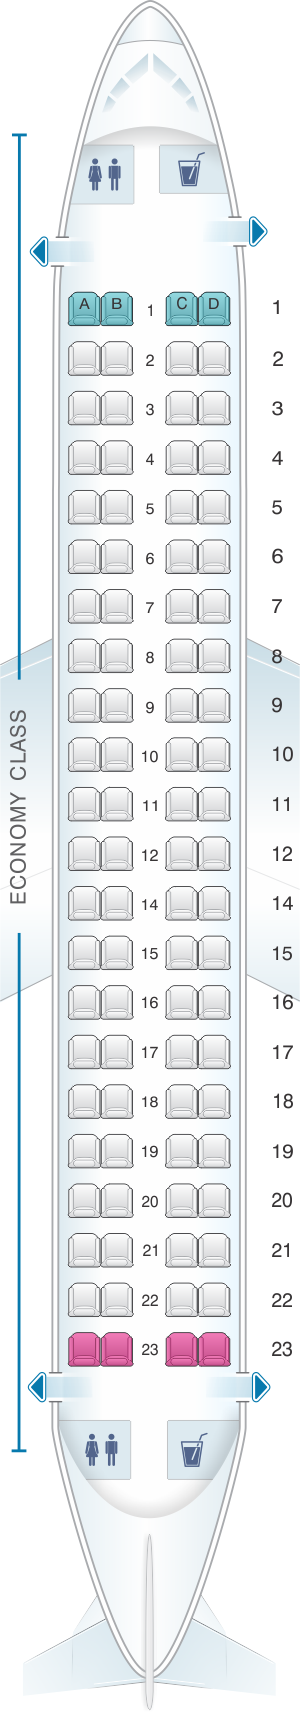 Seat map for Flybe Embraer ERJ-175